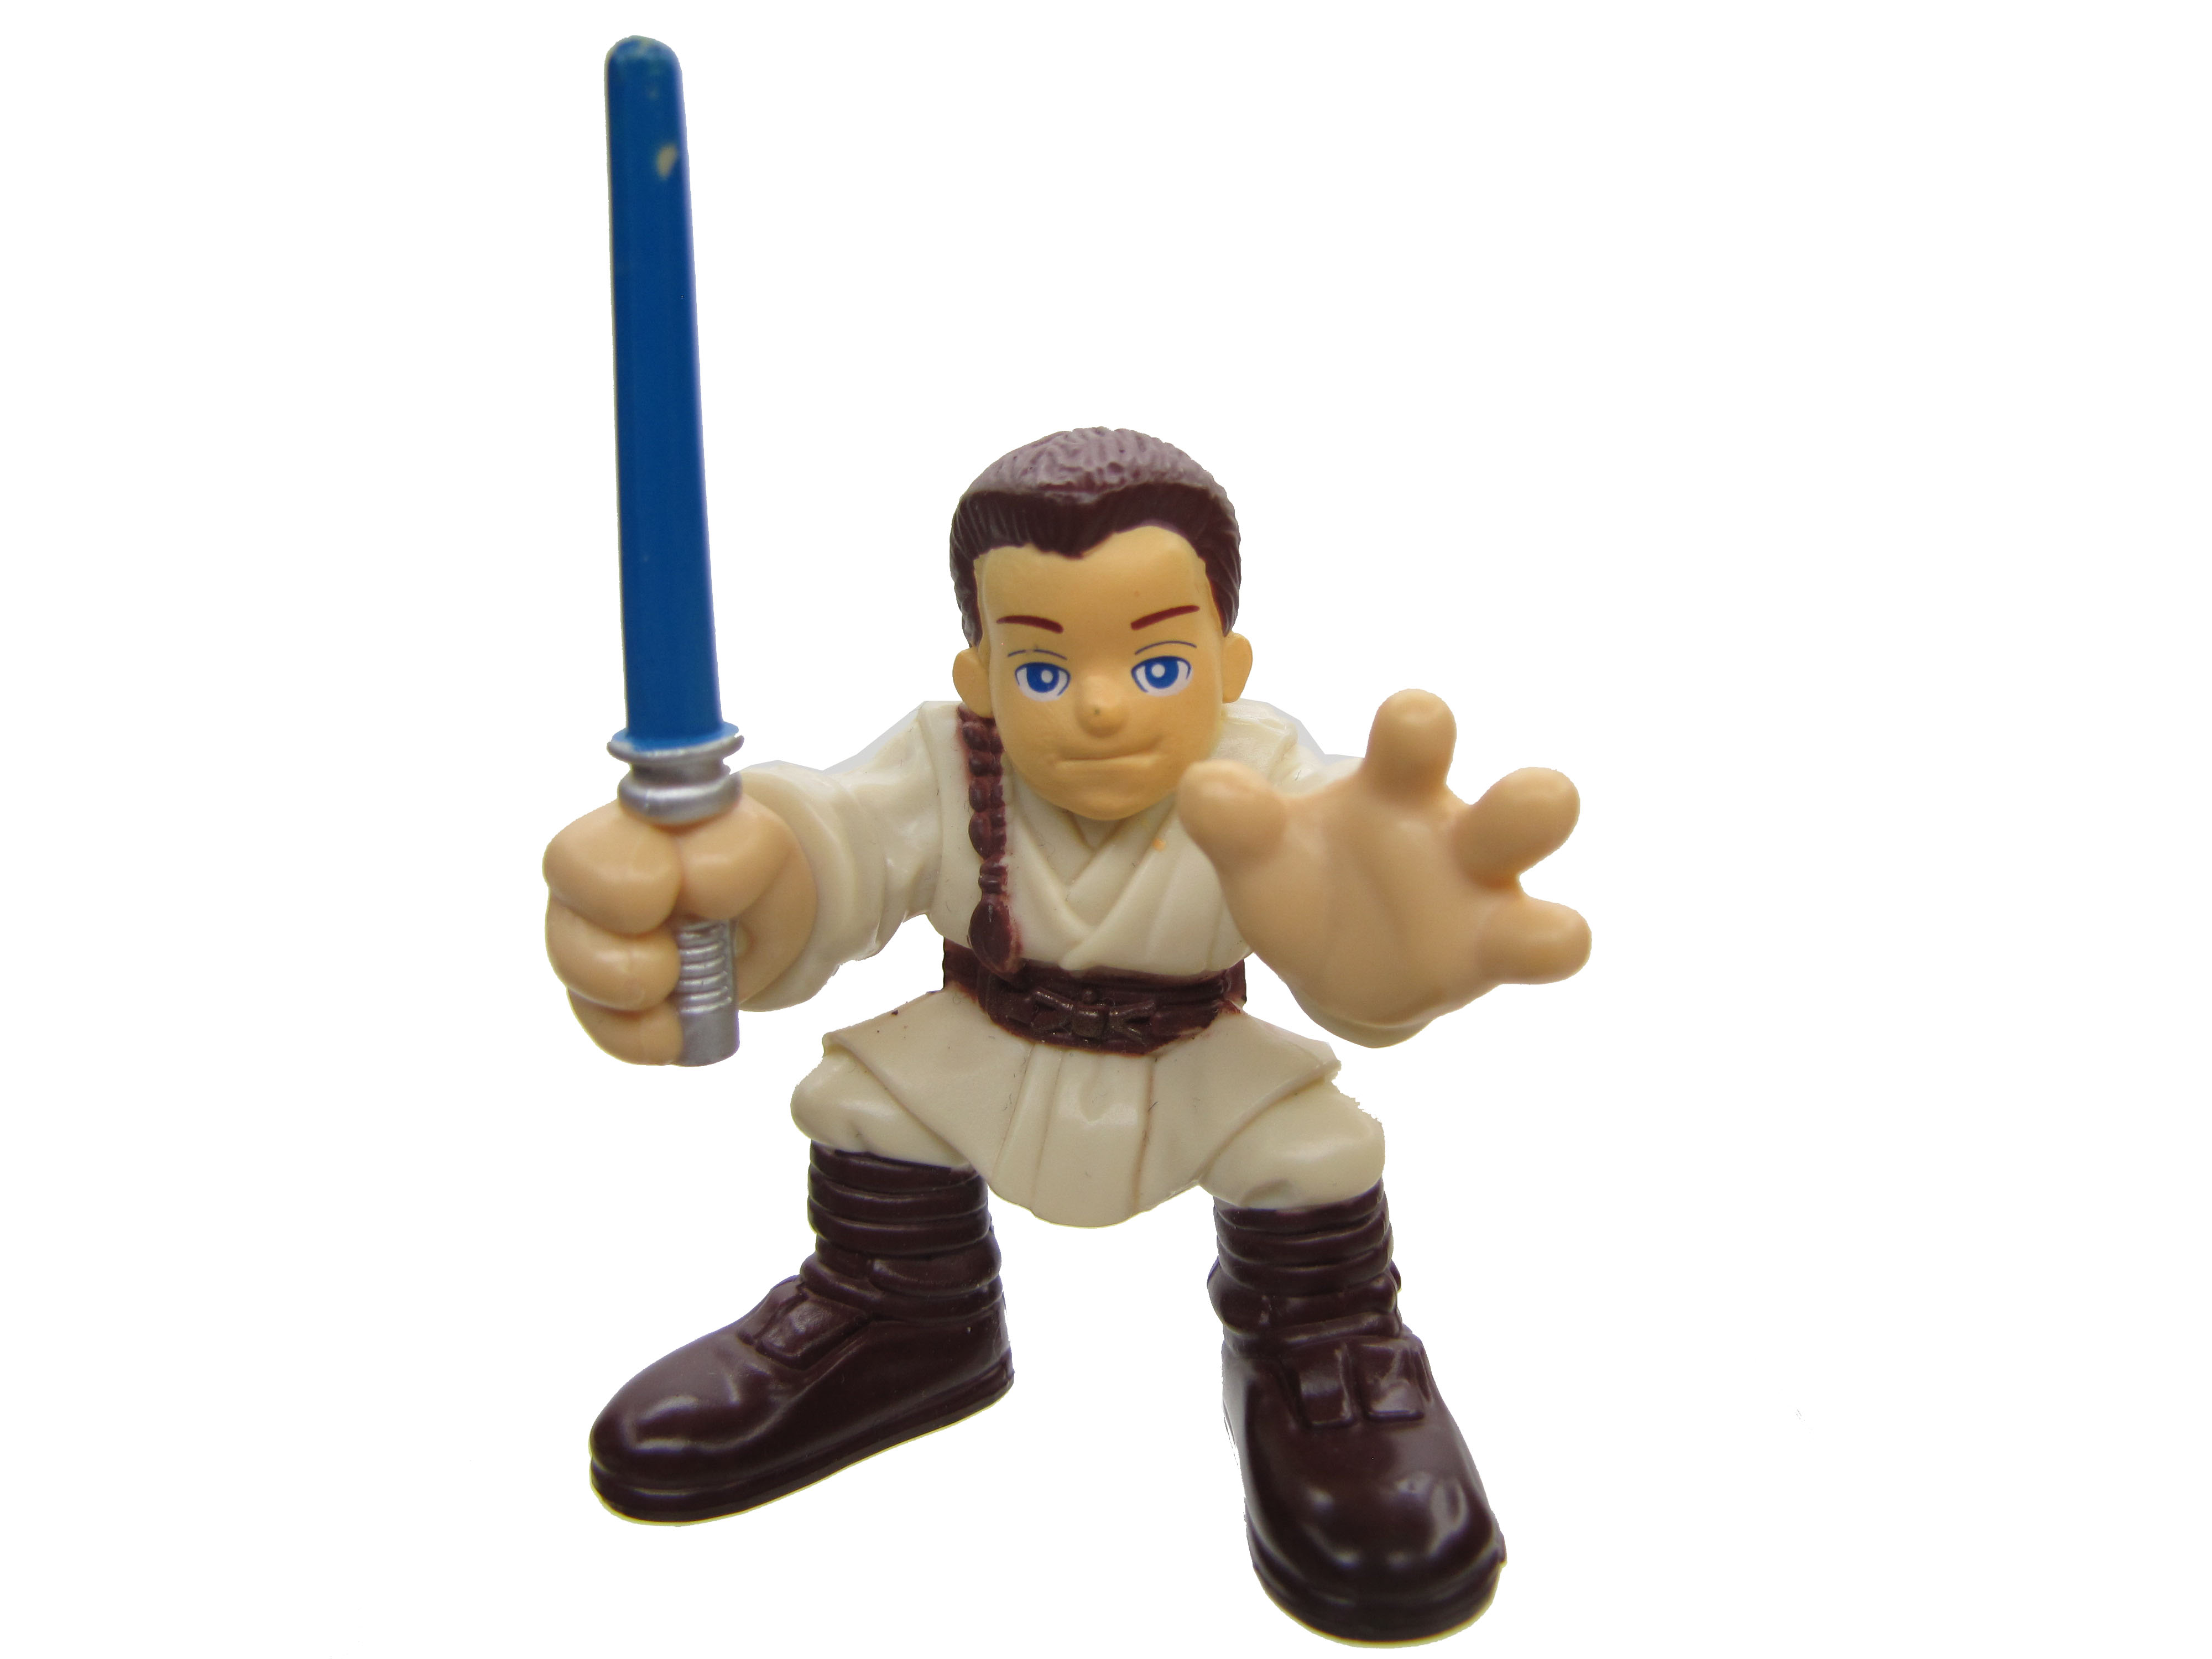 Star Wars Galactic Heroes BATTLE OF NABOO OBI-WAN KENOBI